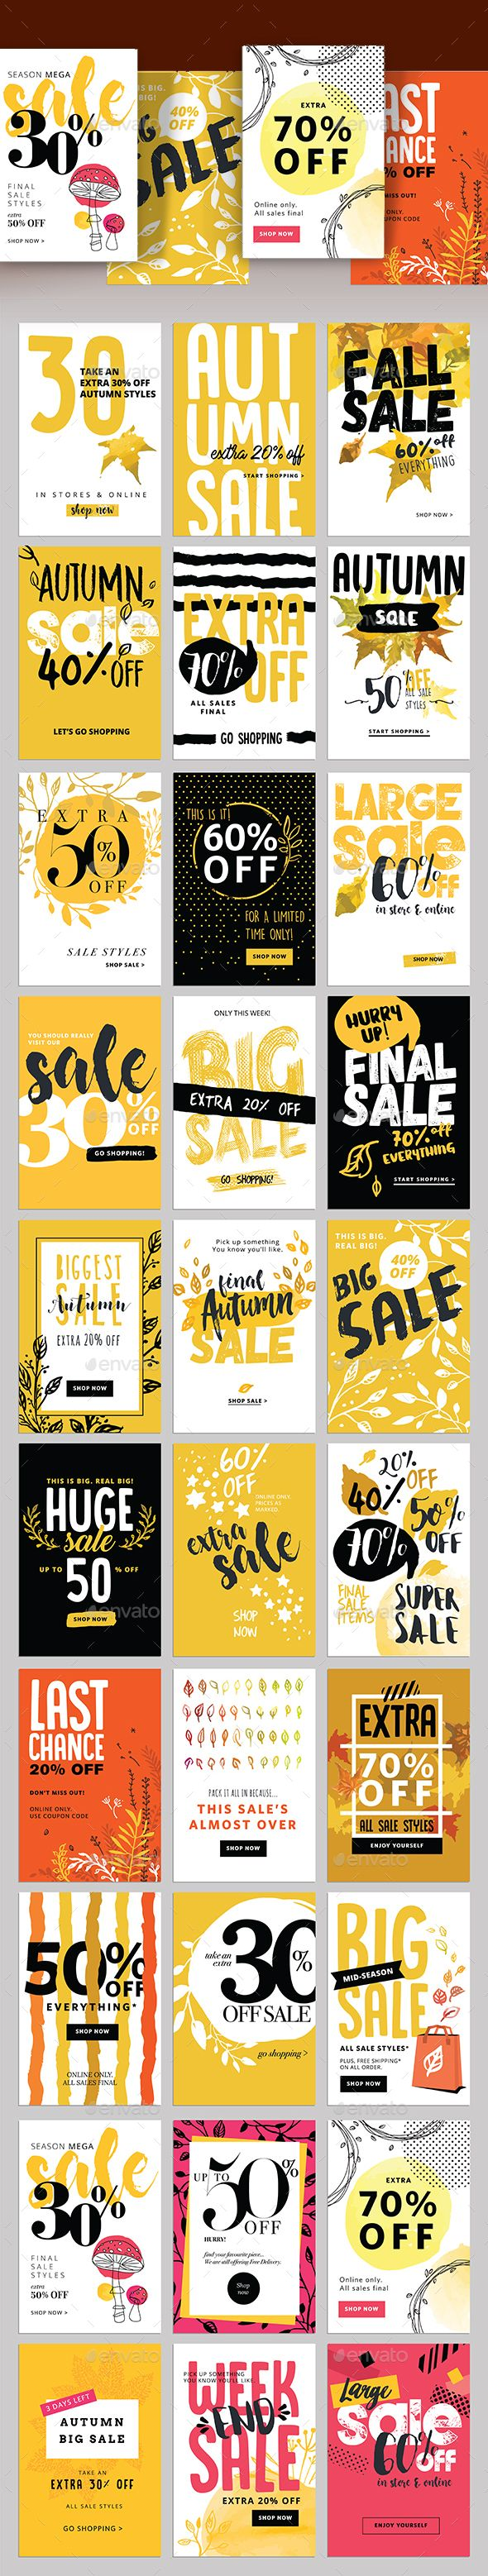 Advertising Poster Templates Cool 68 Best Creative Layouts Images On Pinterest  Page Layout Graph .